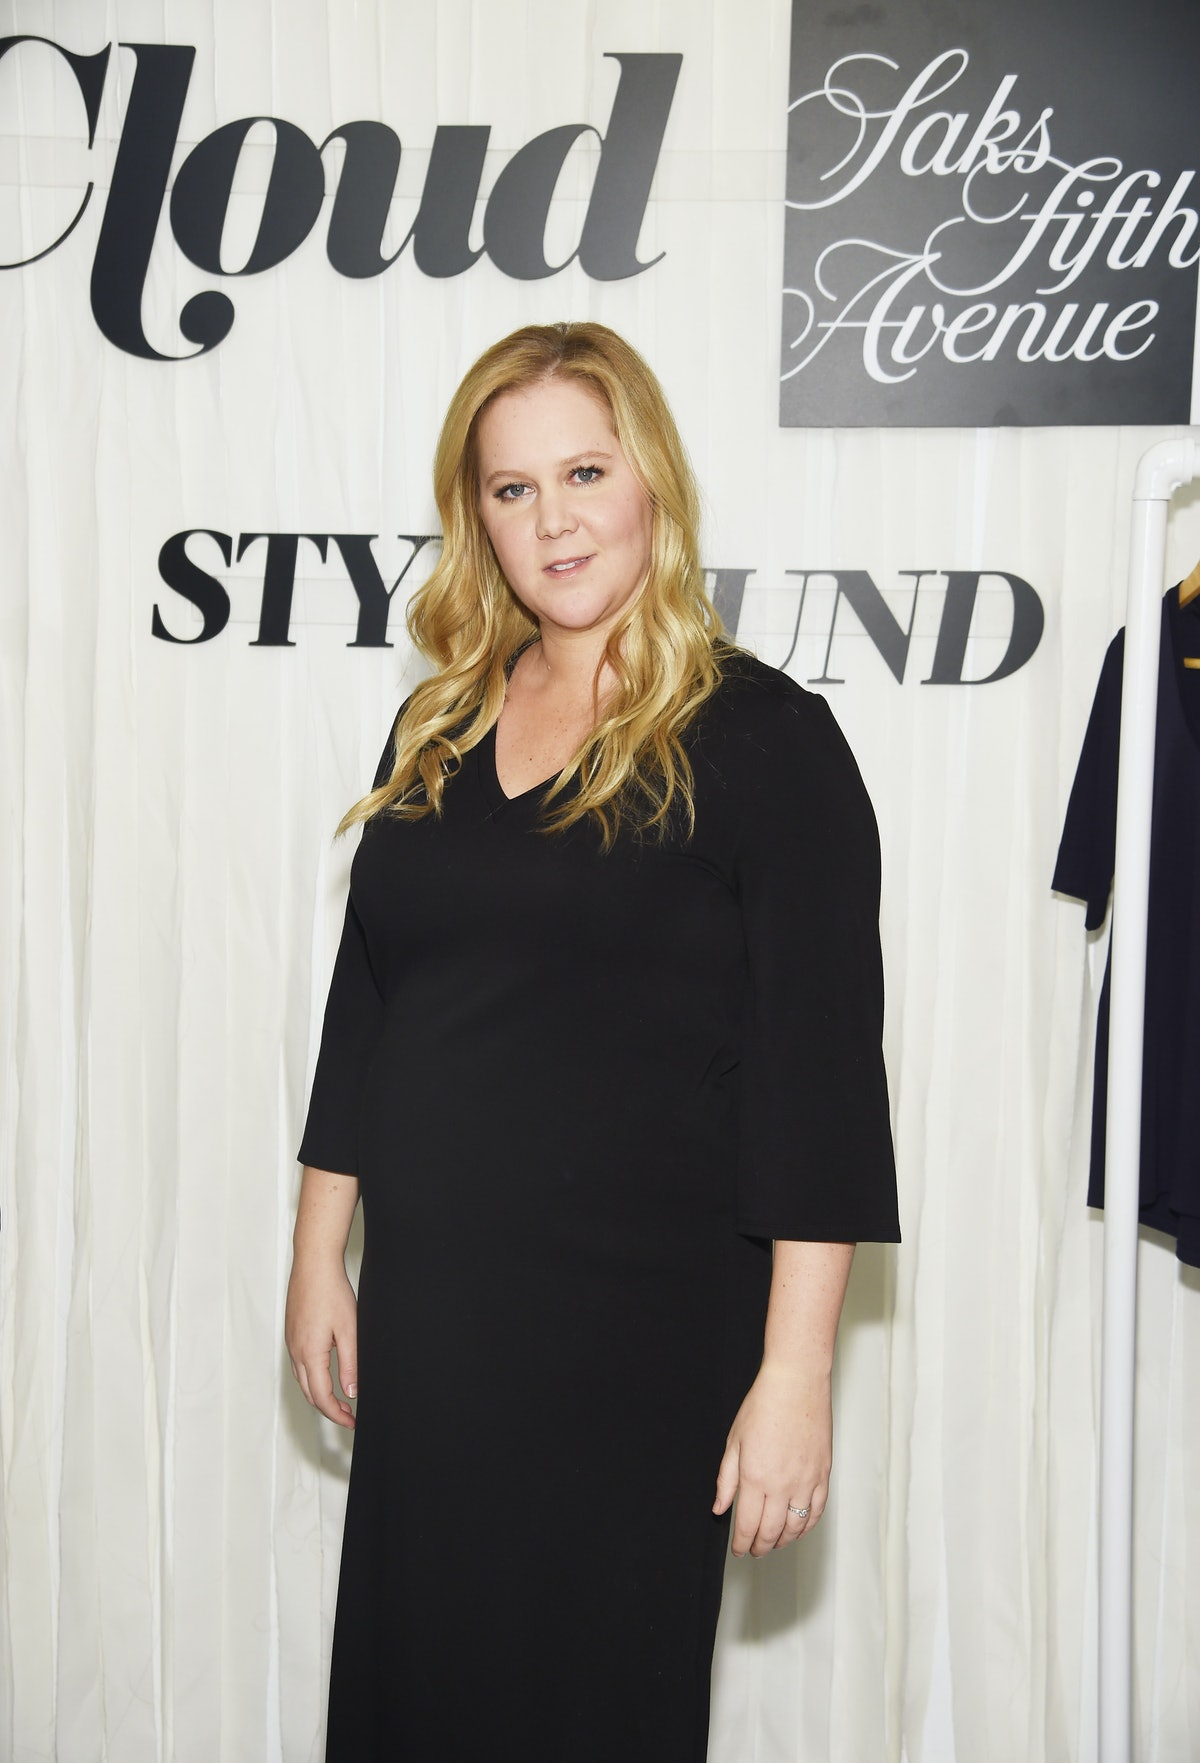 What's In Amy Schumer's Le Cloud Clothing Line? It's All About Cozy Separates